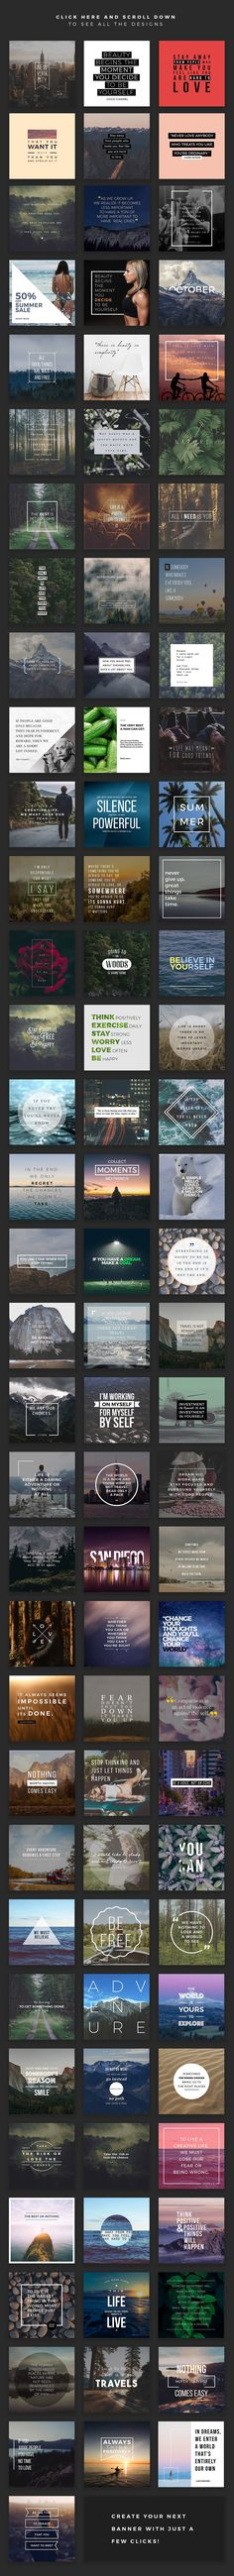 MegaPack Social Media Banner by MinimalStudioCo on - Tap the link to shop on our official online store! You can also join our affiliate and/or rewards programs for FREE! Social Media Banner, Social Media Template, Social Media Design, Social Media Graphics, Social Media Tips, Social Media Marketing, Web Design, Graphic Design, Desing Inspiration